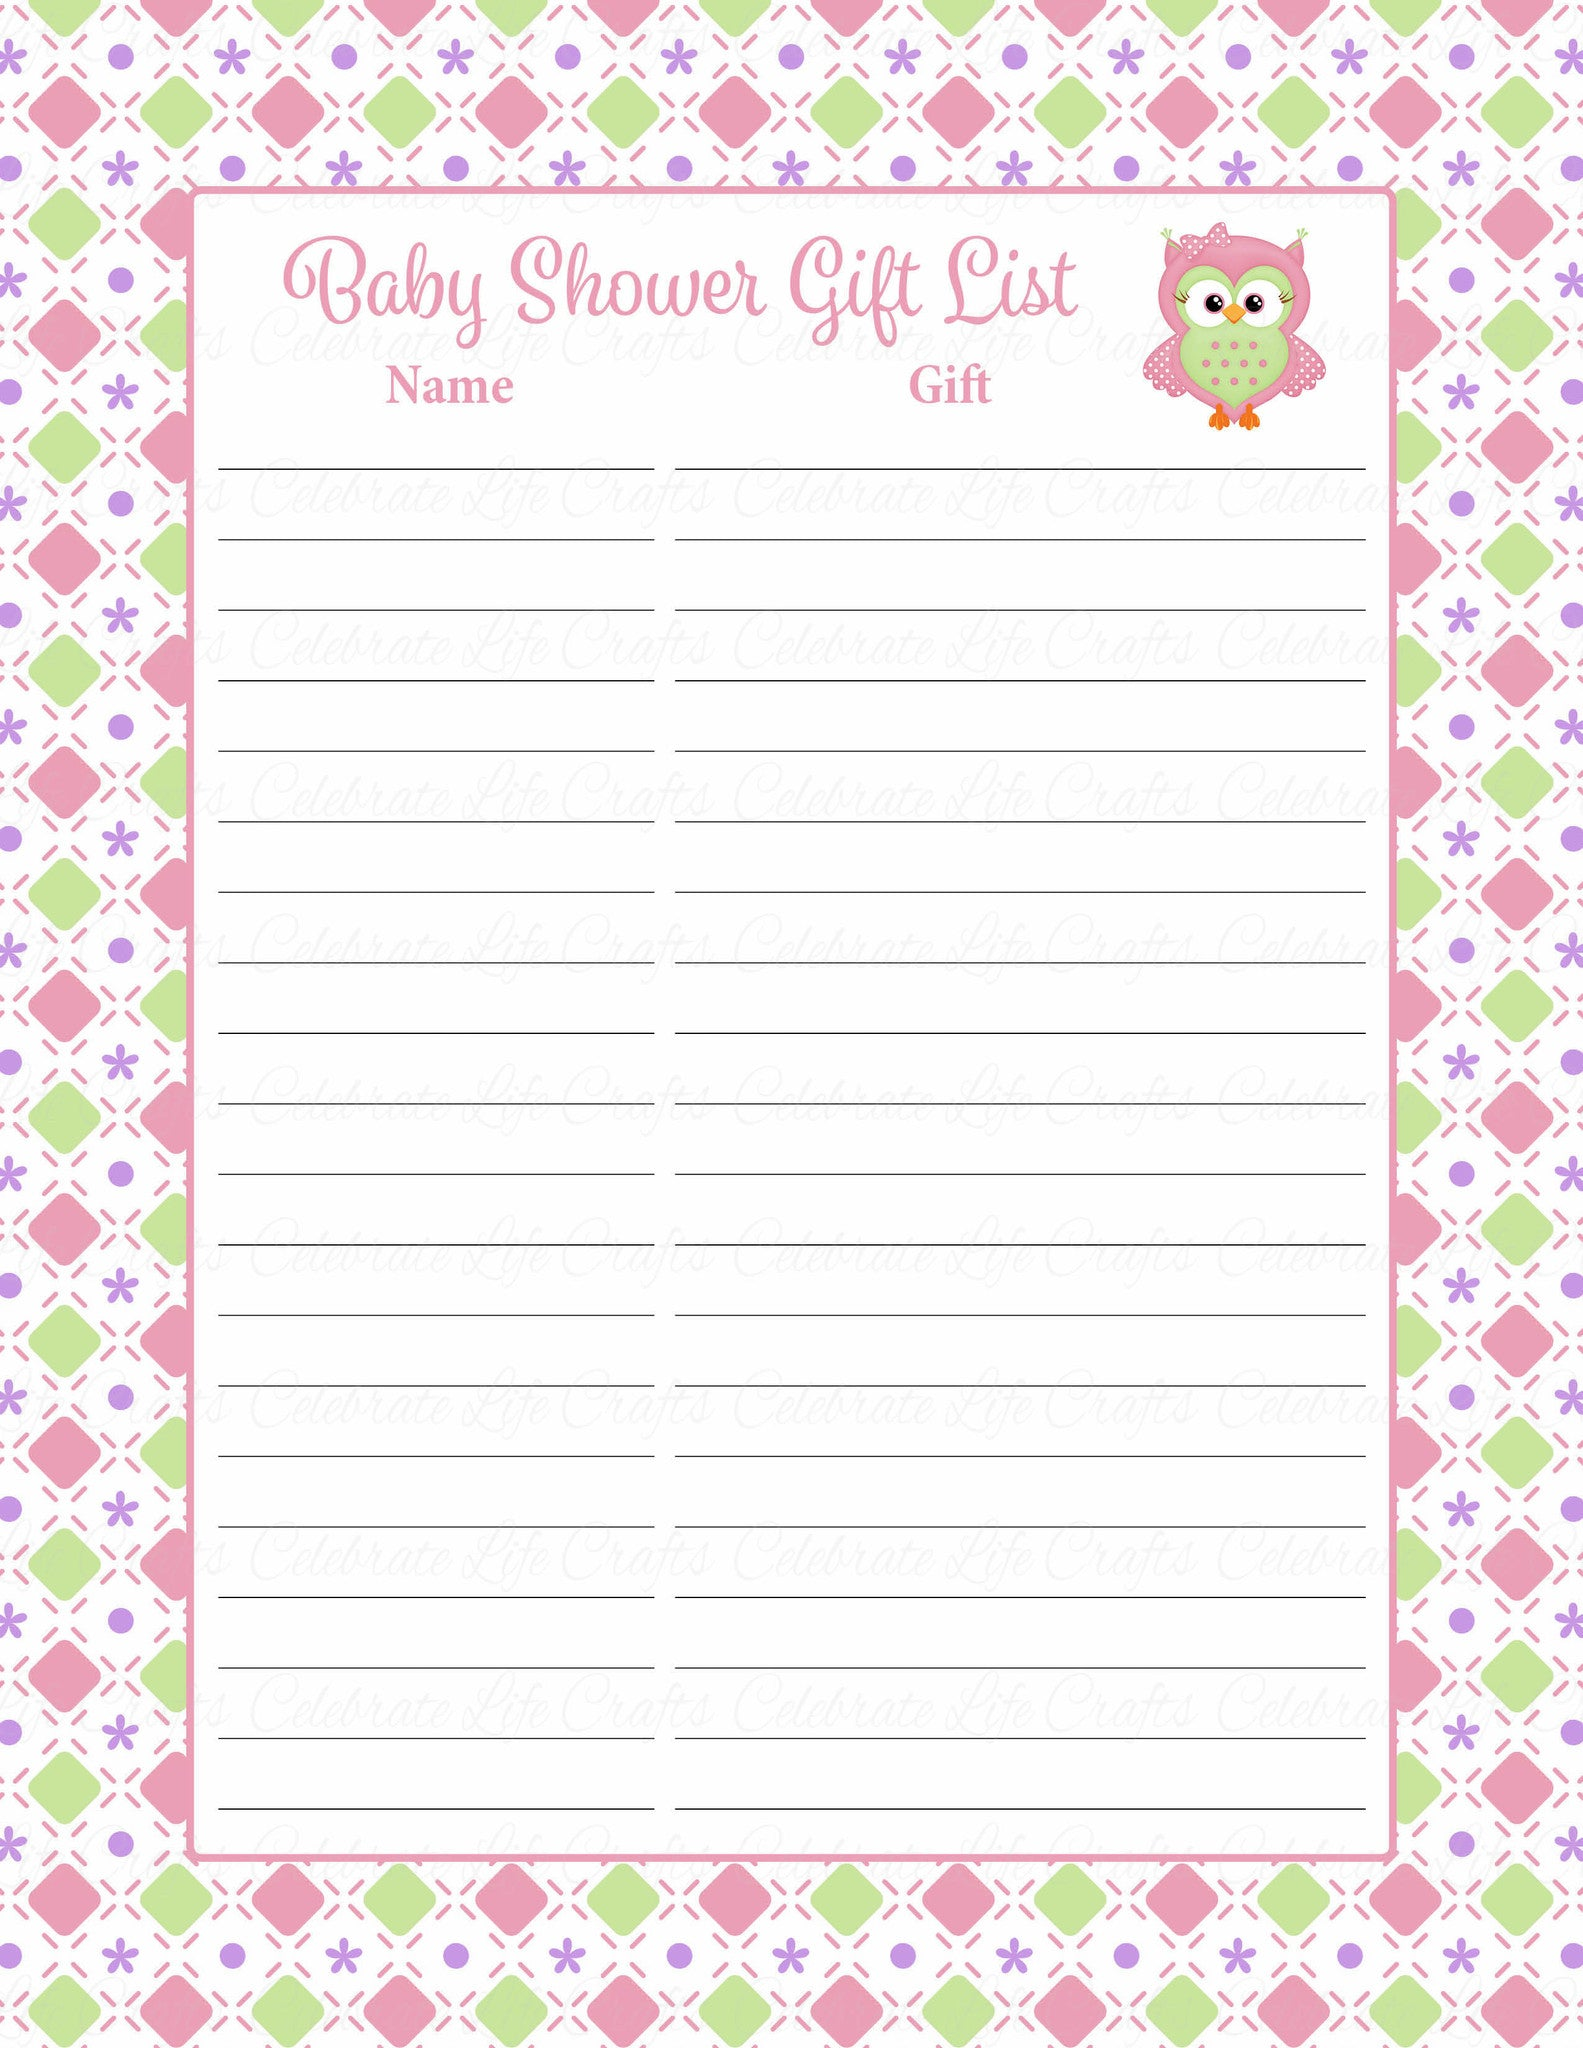 Baby Shower Gift List Set Printable Download Pink Green Baby Shower Decorations B2010